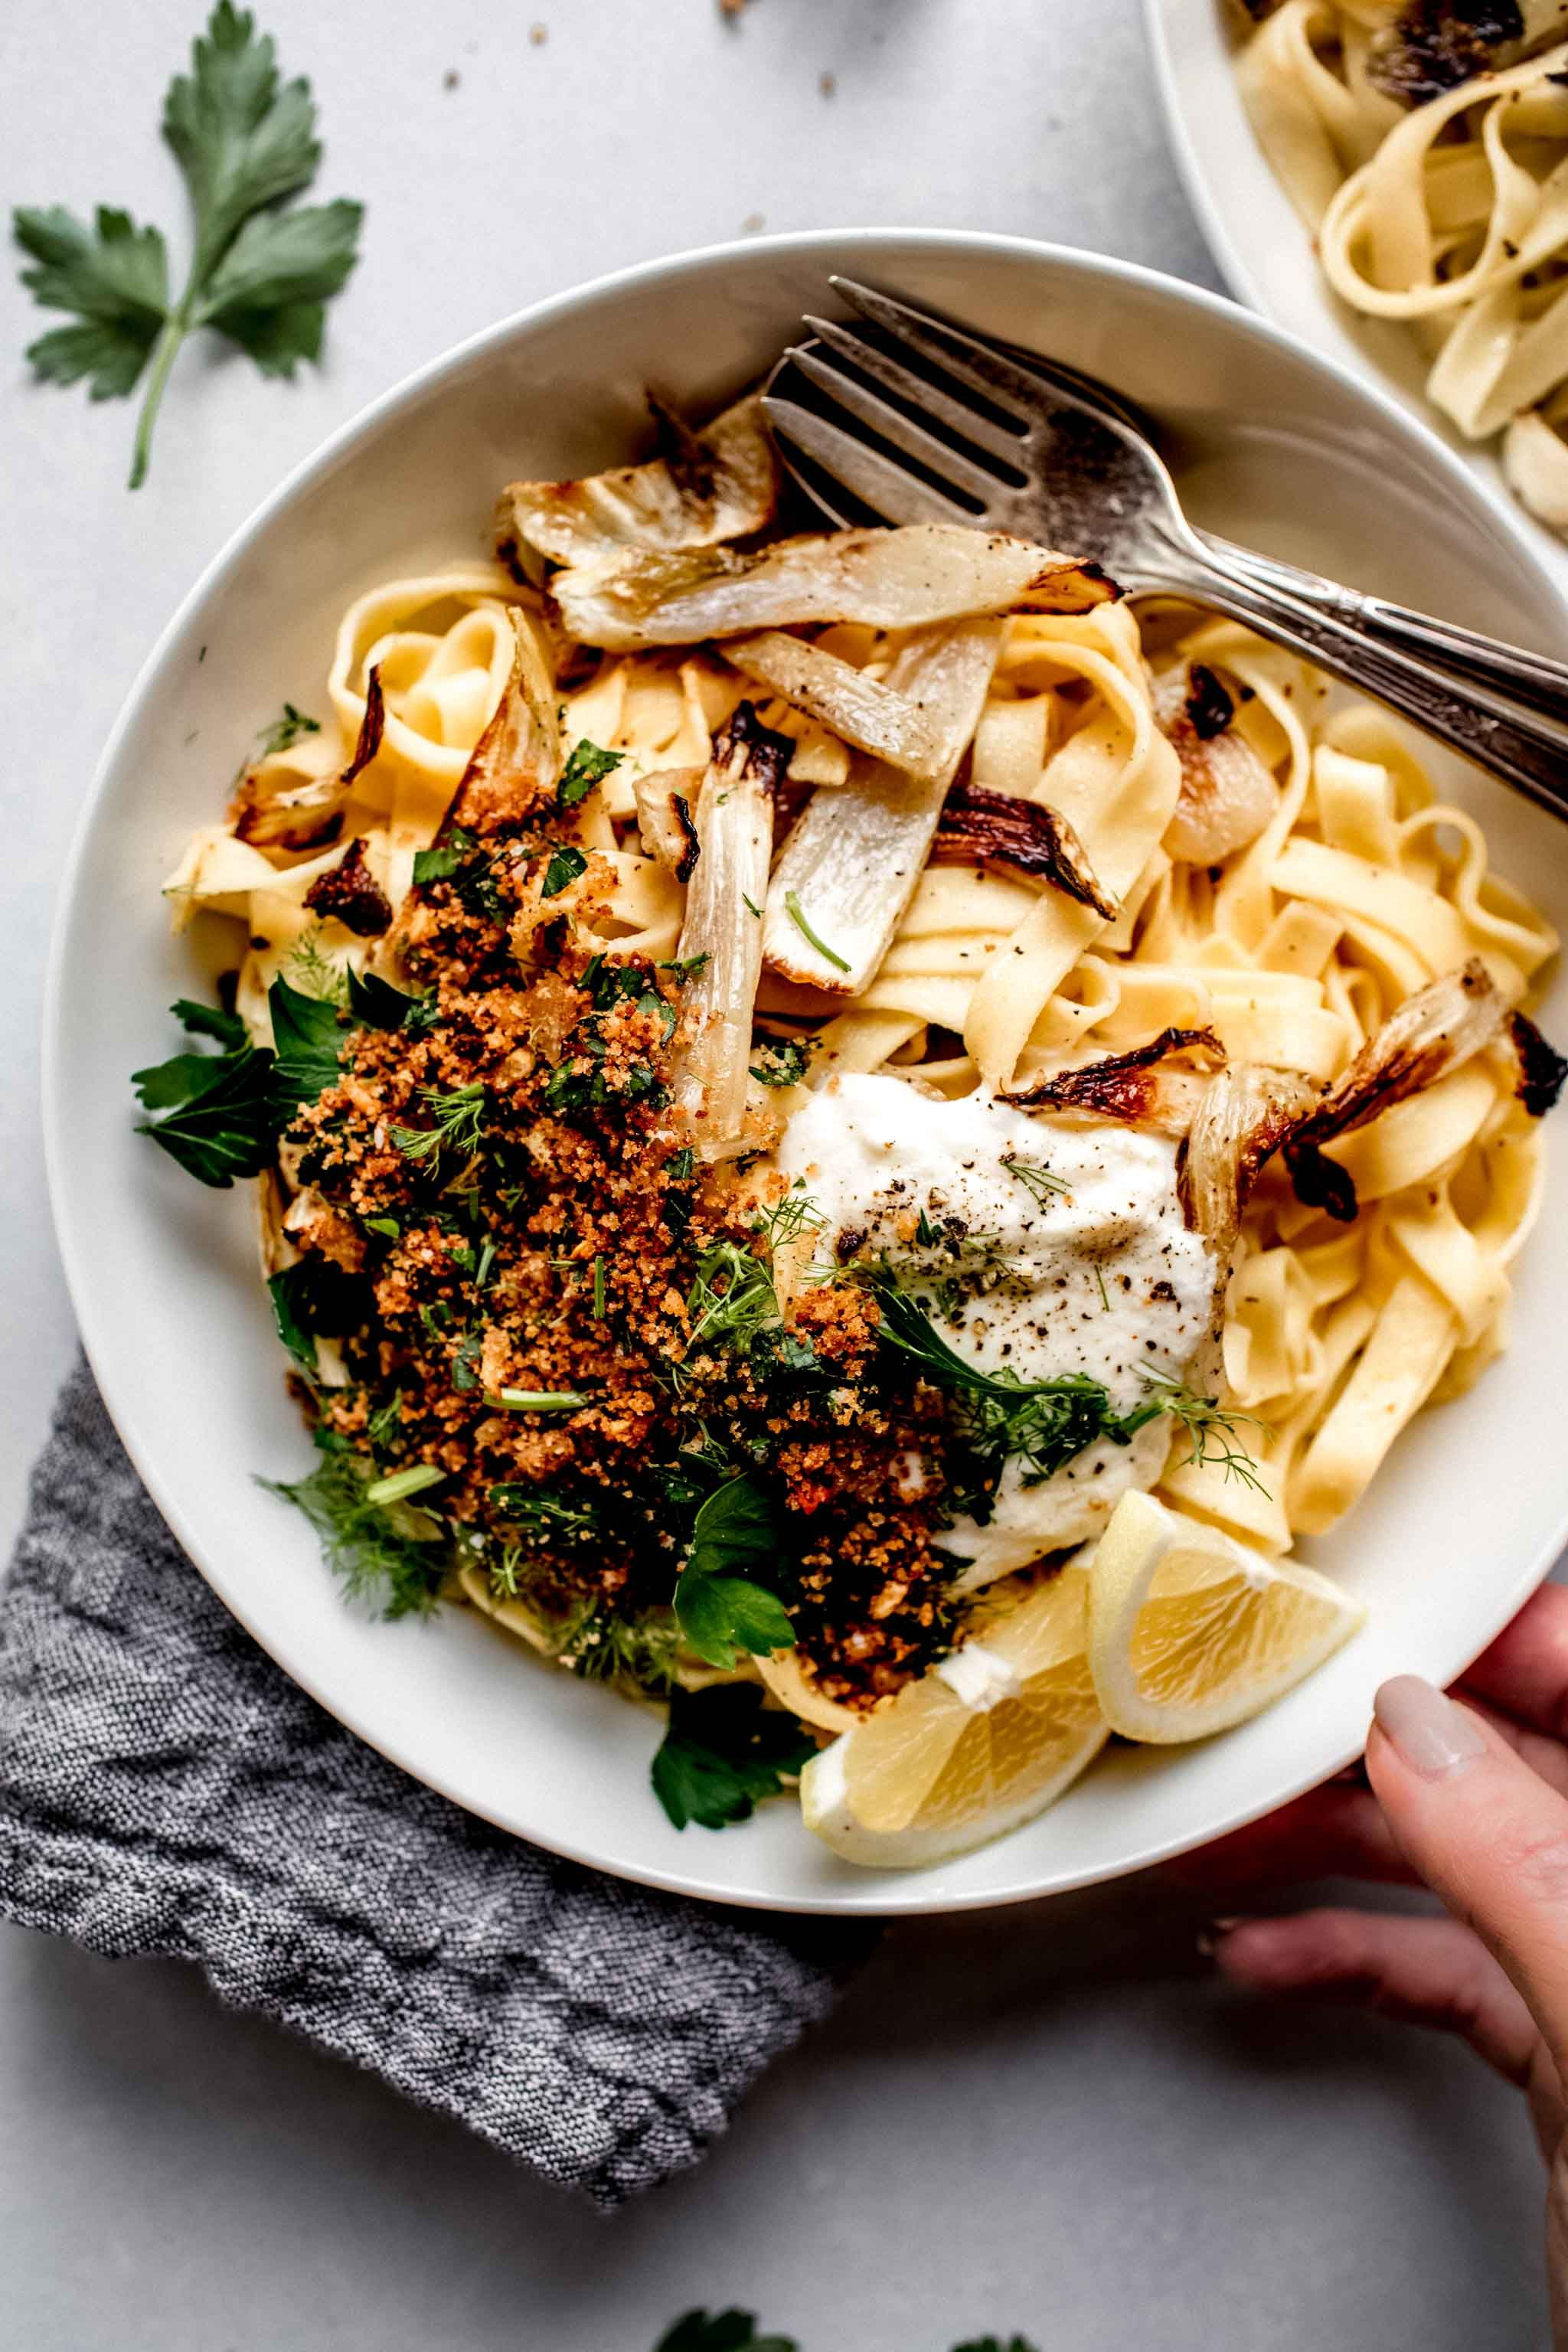 This Roasted Fennel Pasta recipe features fresh linguine tossed in a light lemon sauce with roasted fennel. It's topped with dollop of ricotta cheese for extra richness.